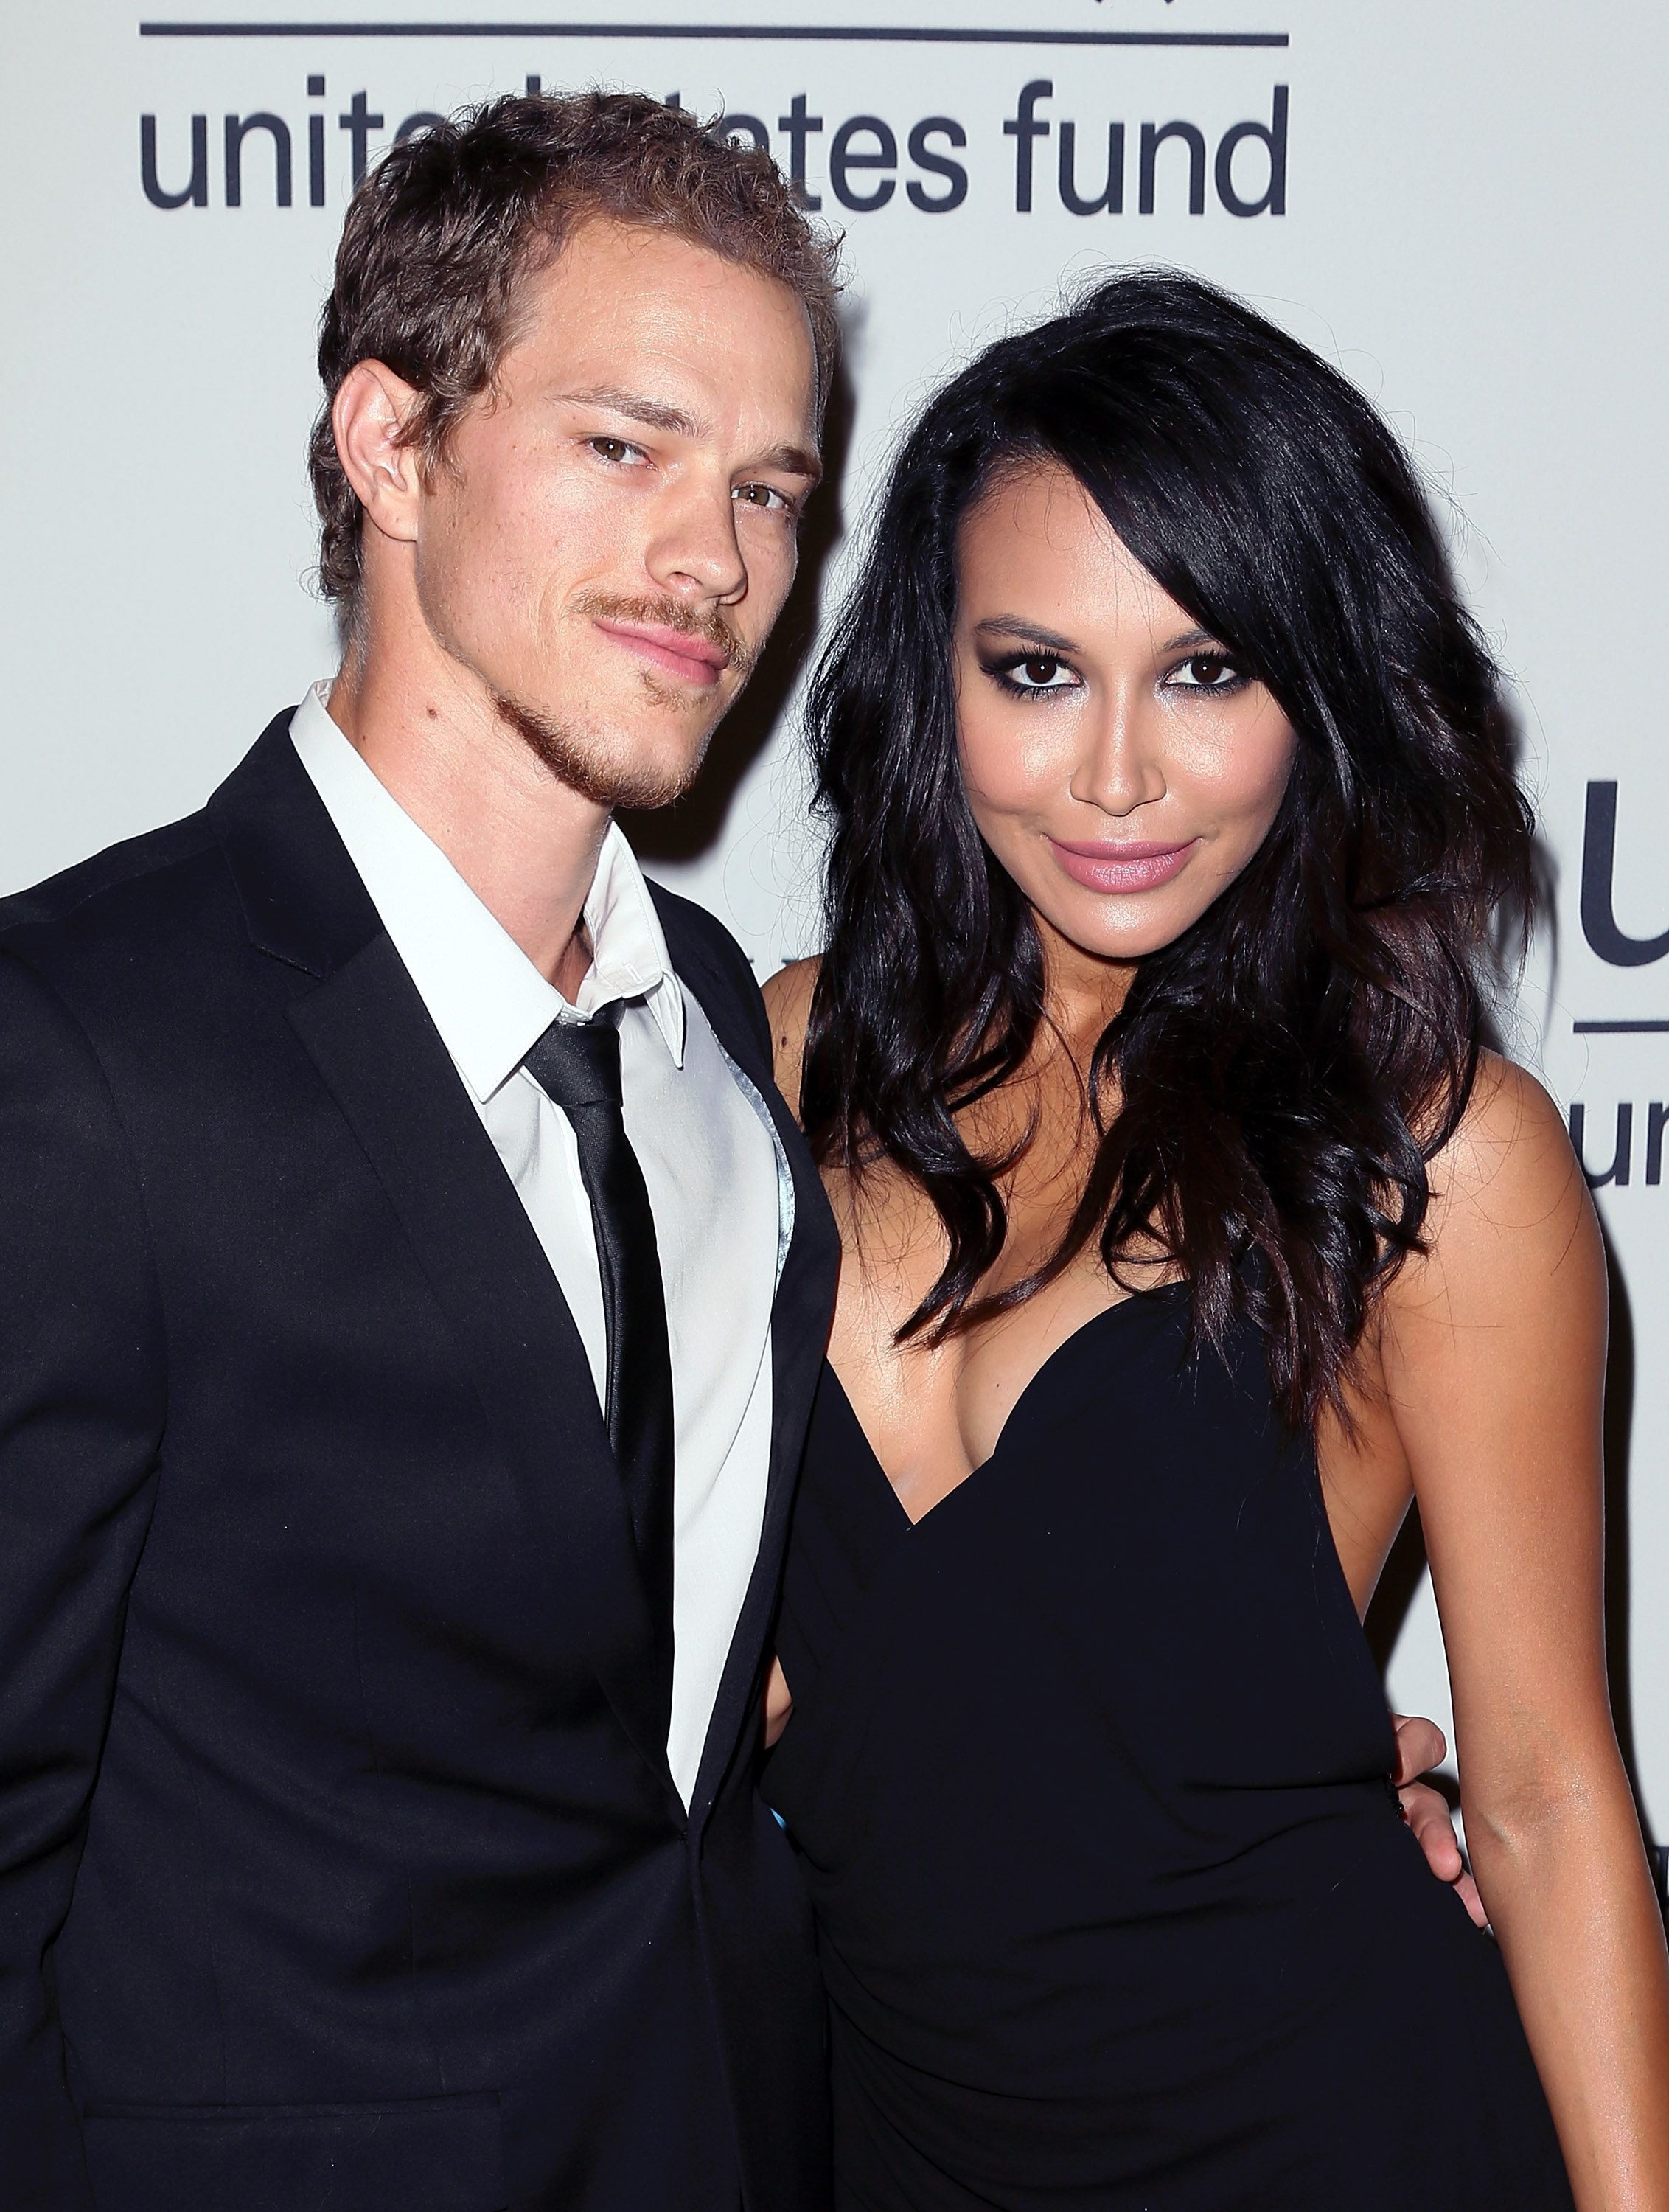 LOS ANGELES, CA - OCTOBER 30:  Actors/husband & wife Ryan Dorsey (L) and Naya Rivera attend UNICEF's Next Generation's 2nd Annual UNICEF Masquerade Ball at Hollywood Forever Cemetery on October 30, 2014 in Los Angeles, California.  (Photo by David Livingston/Getty Images)